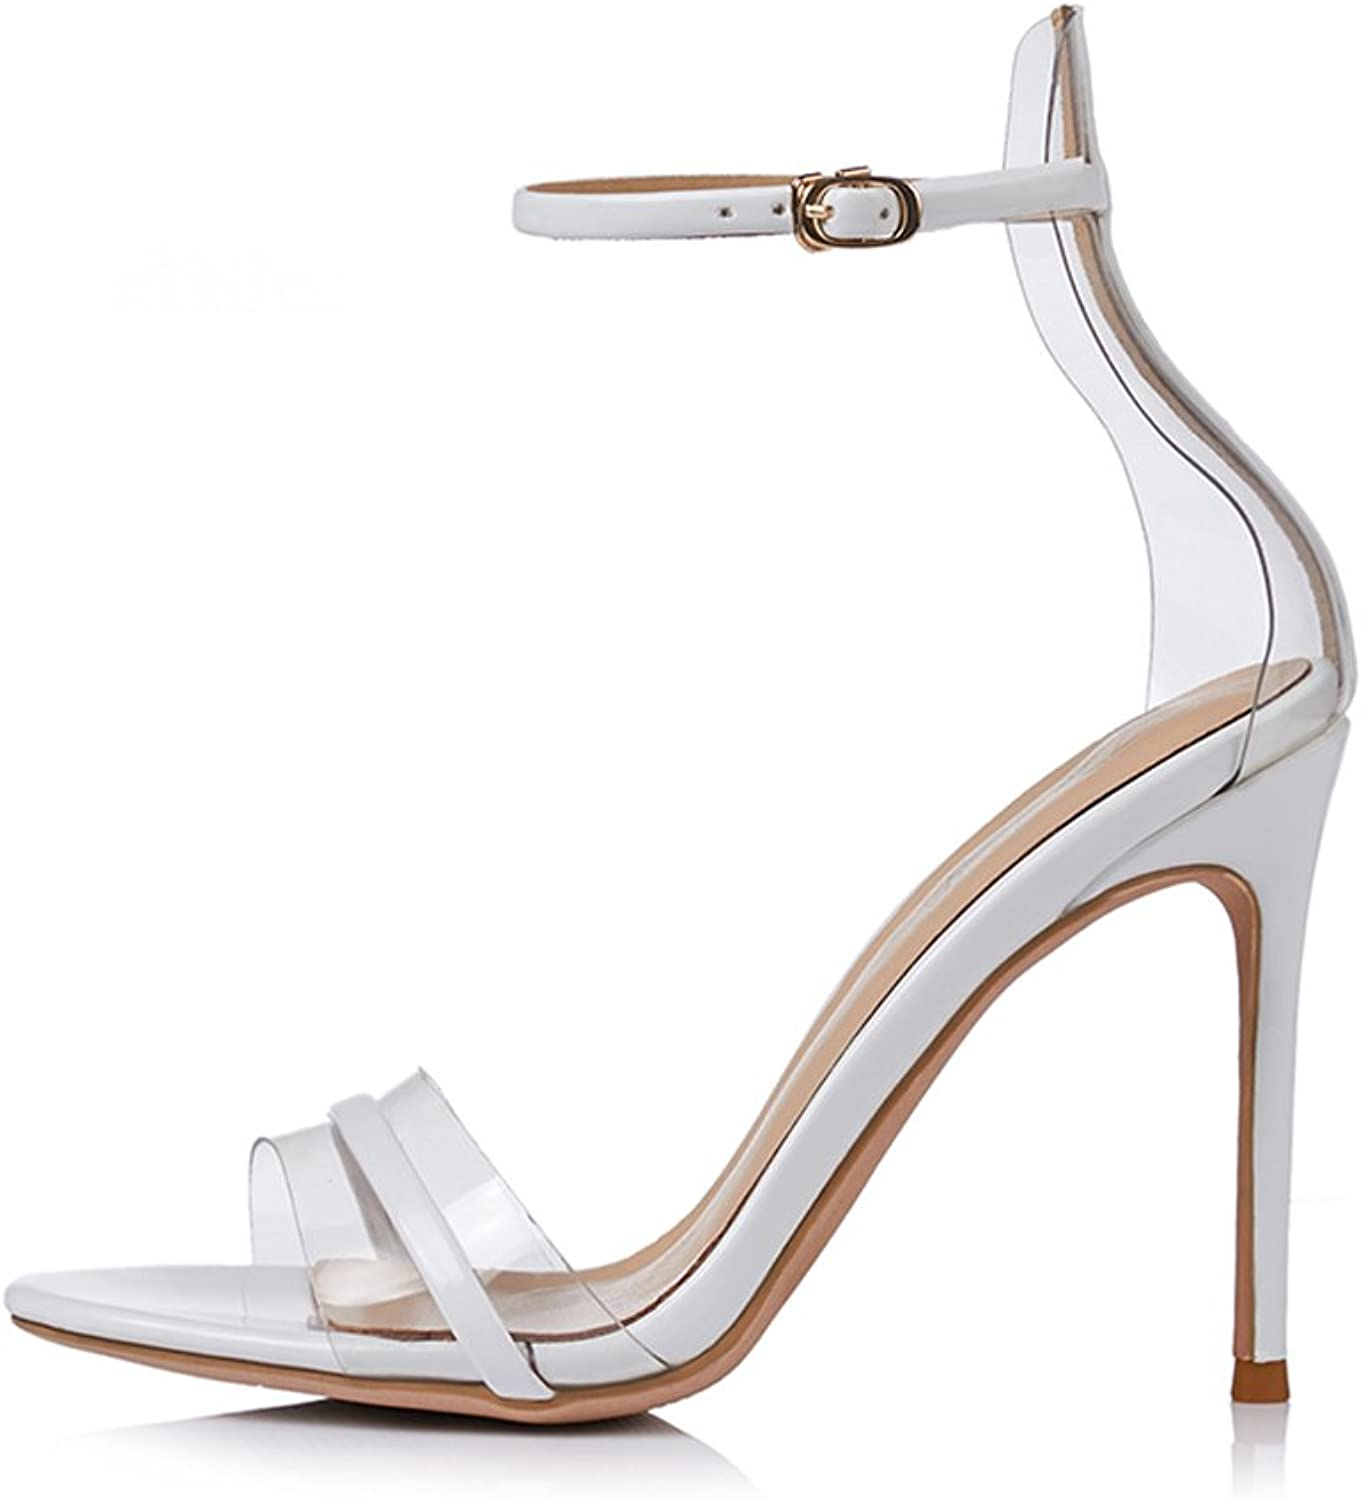 JE shoes Women's Sandals Fine with High-Heeled Words with Transparent Wild 8cm